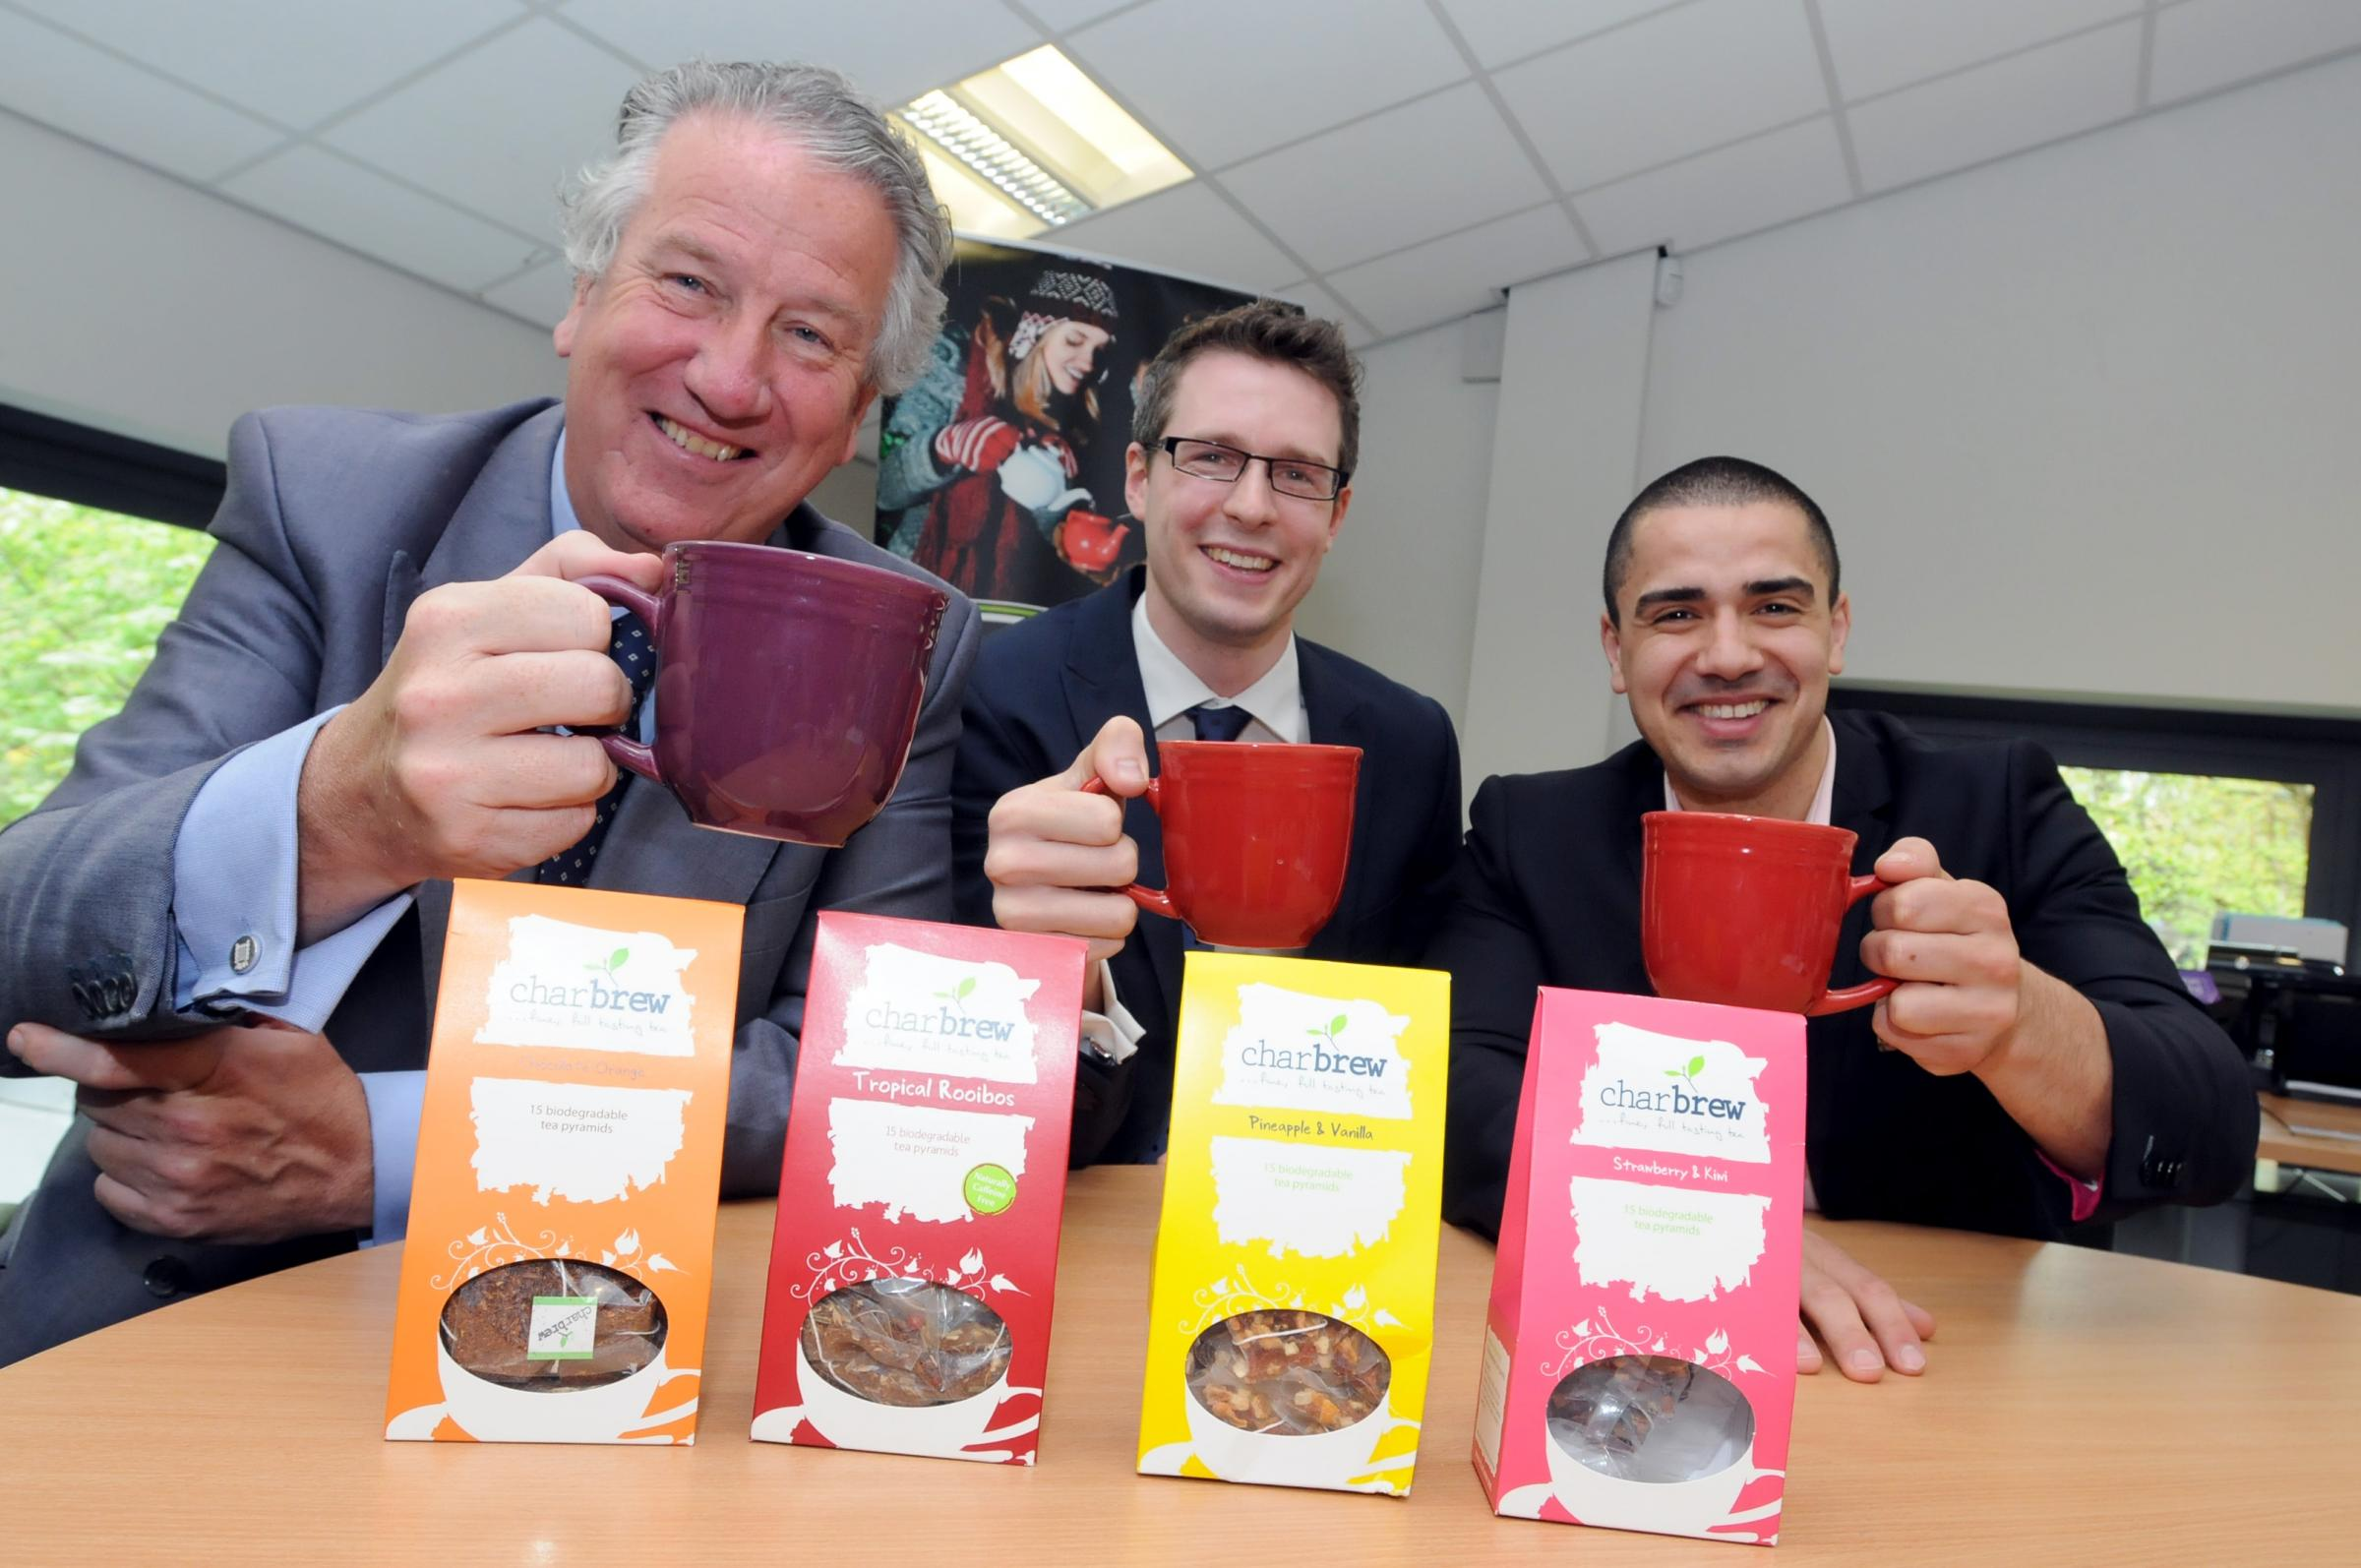 Warrington Guardian: Future rosey for Thelwall tea firm